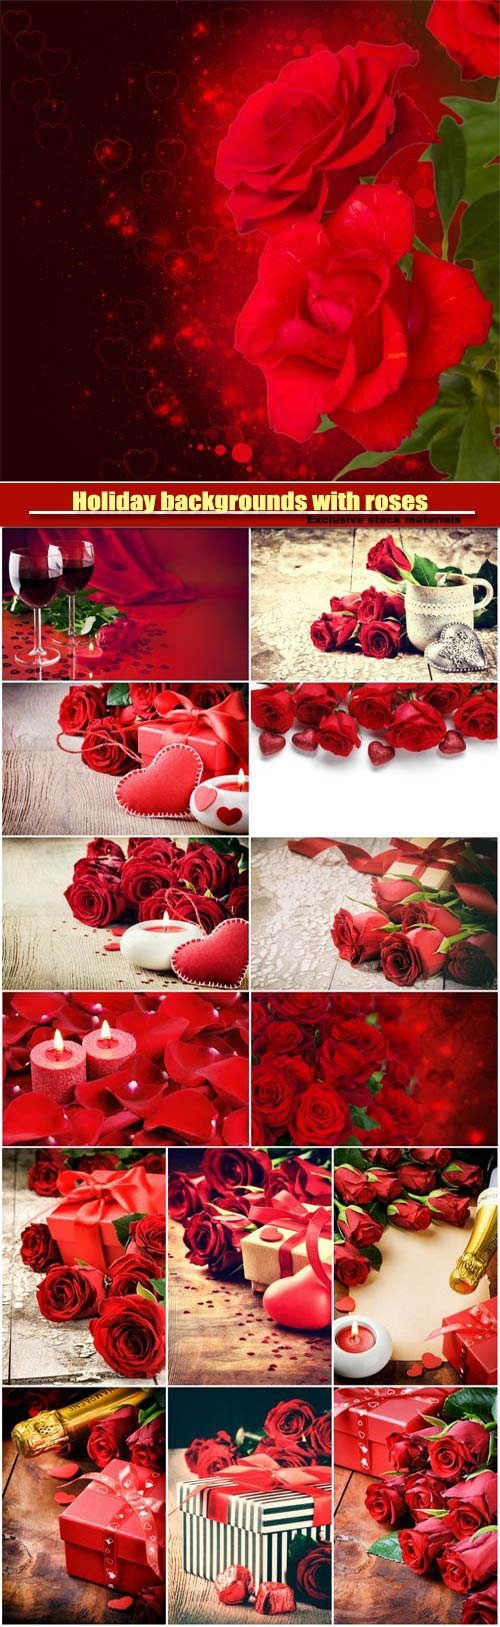 Holiday backgrounds with roses